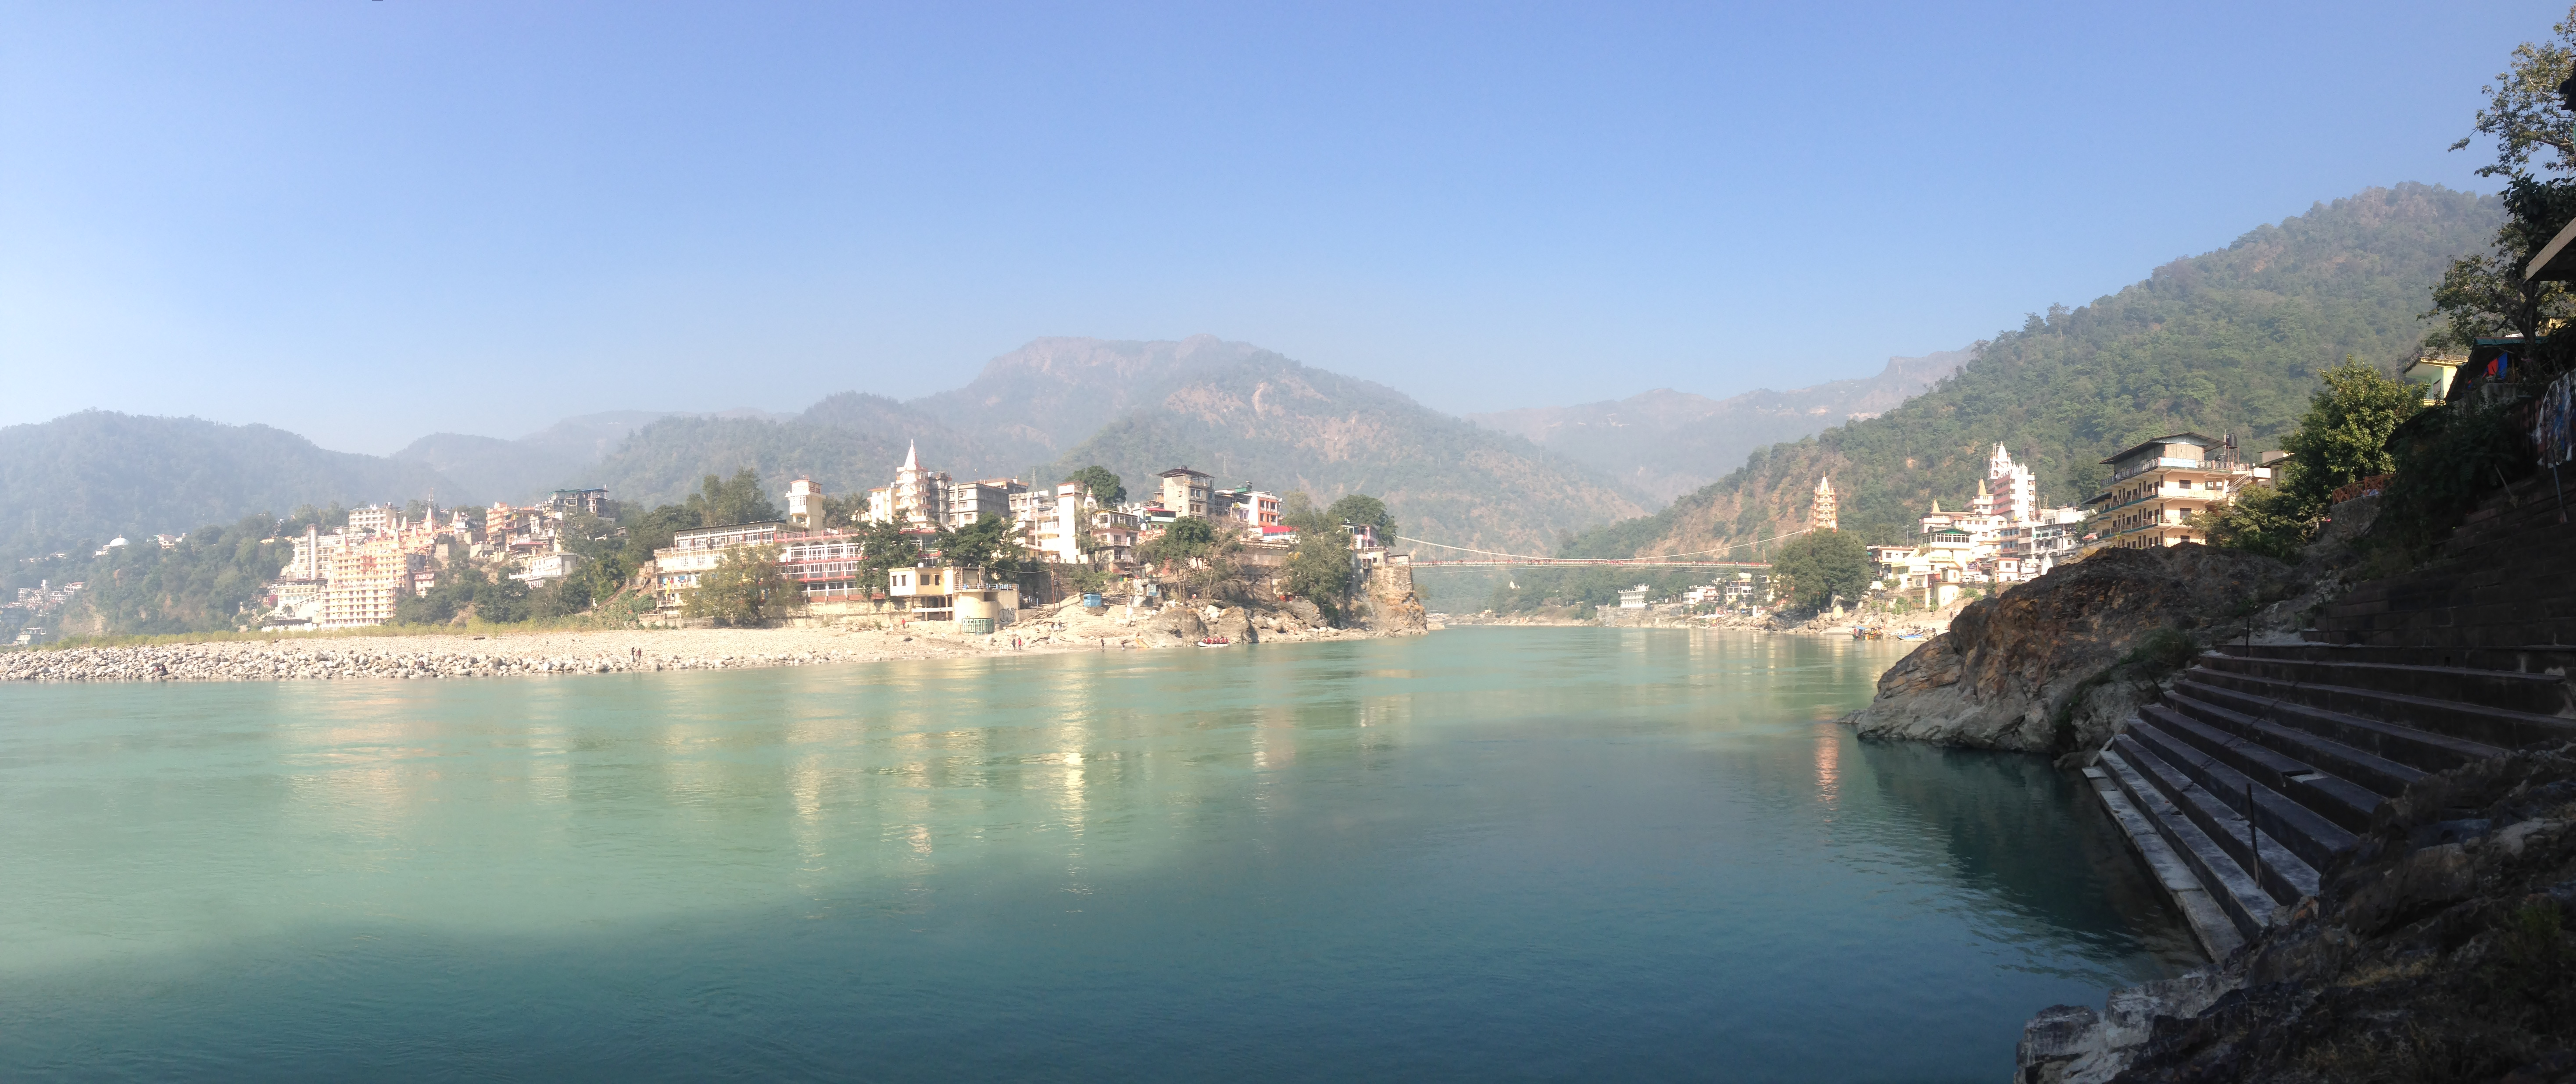 Rishikesh the world capital of yoga teacher training courses